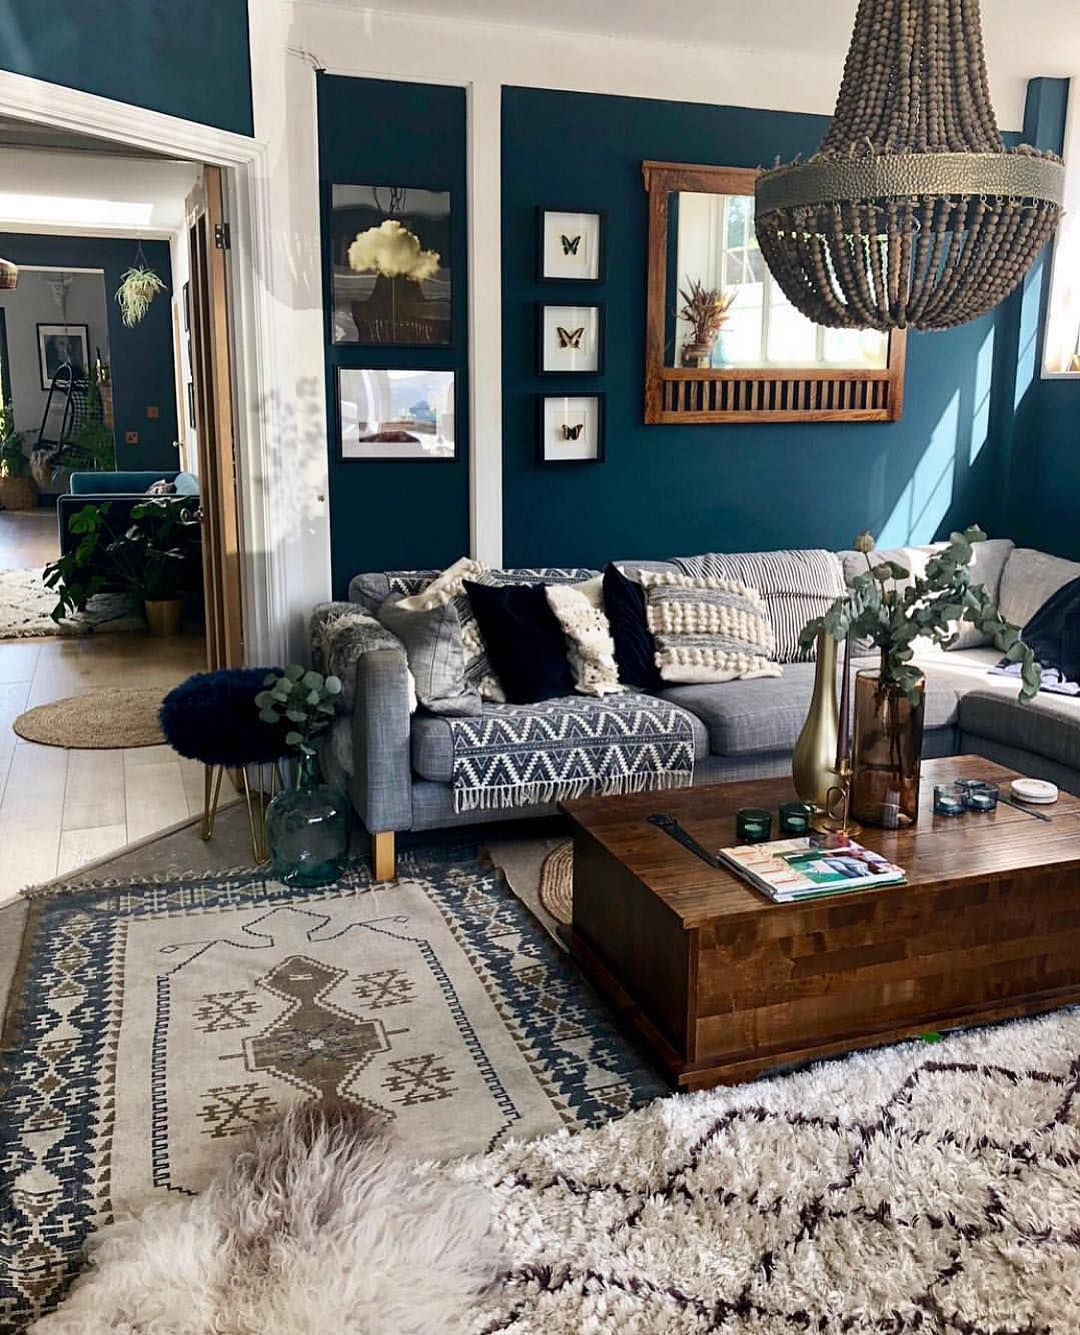 23 Awesome Ideas Of Orange And Blue Living Room Living Room Orange Blue Living Room Blue And Orange Living Room